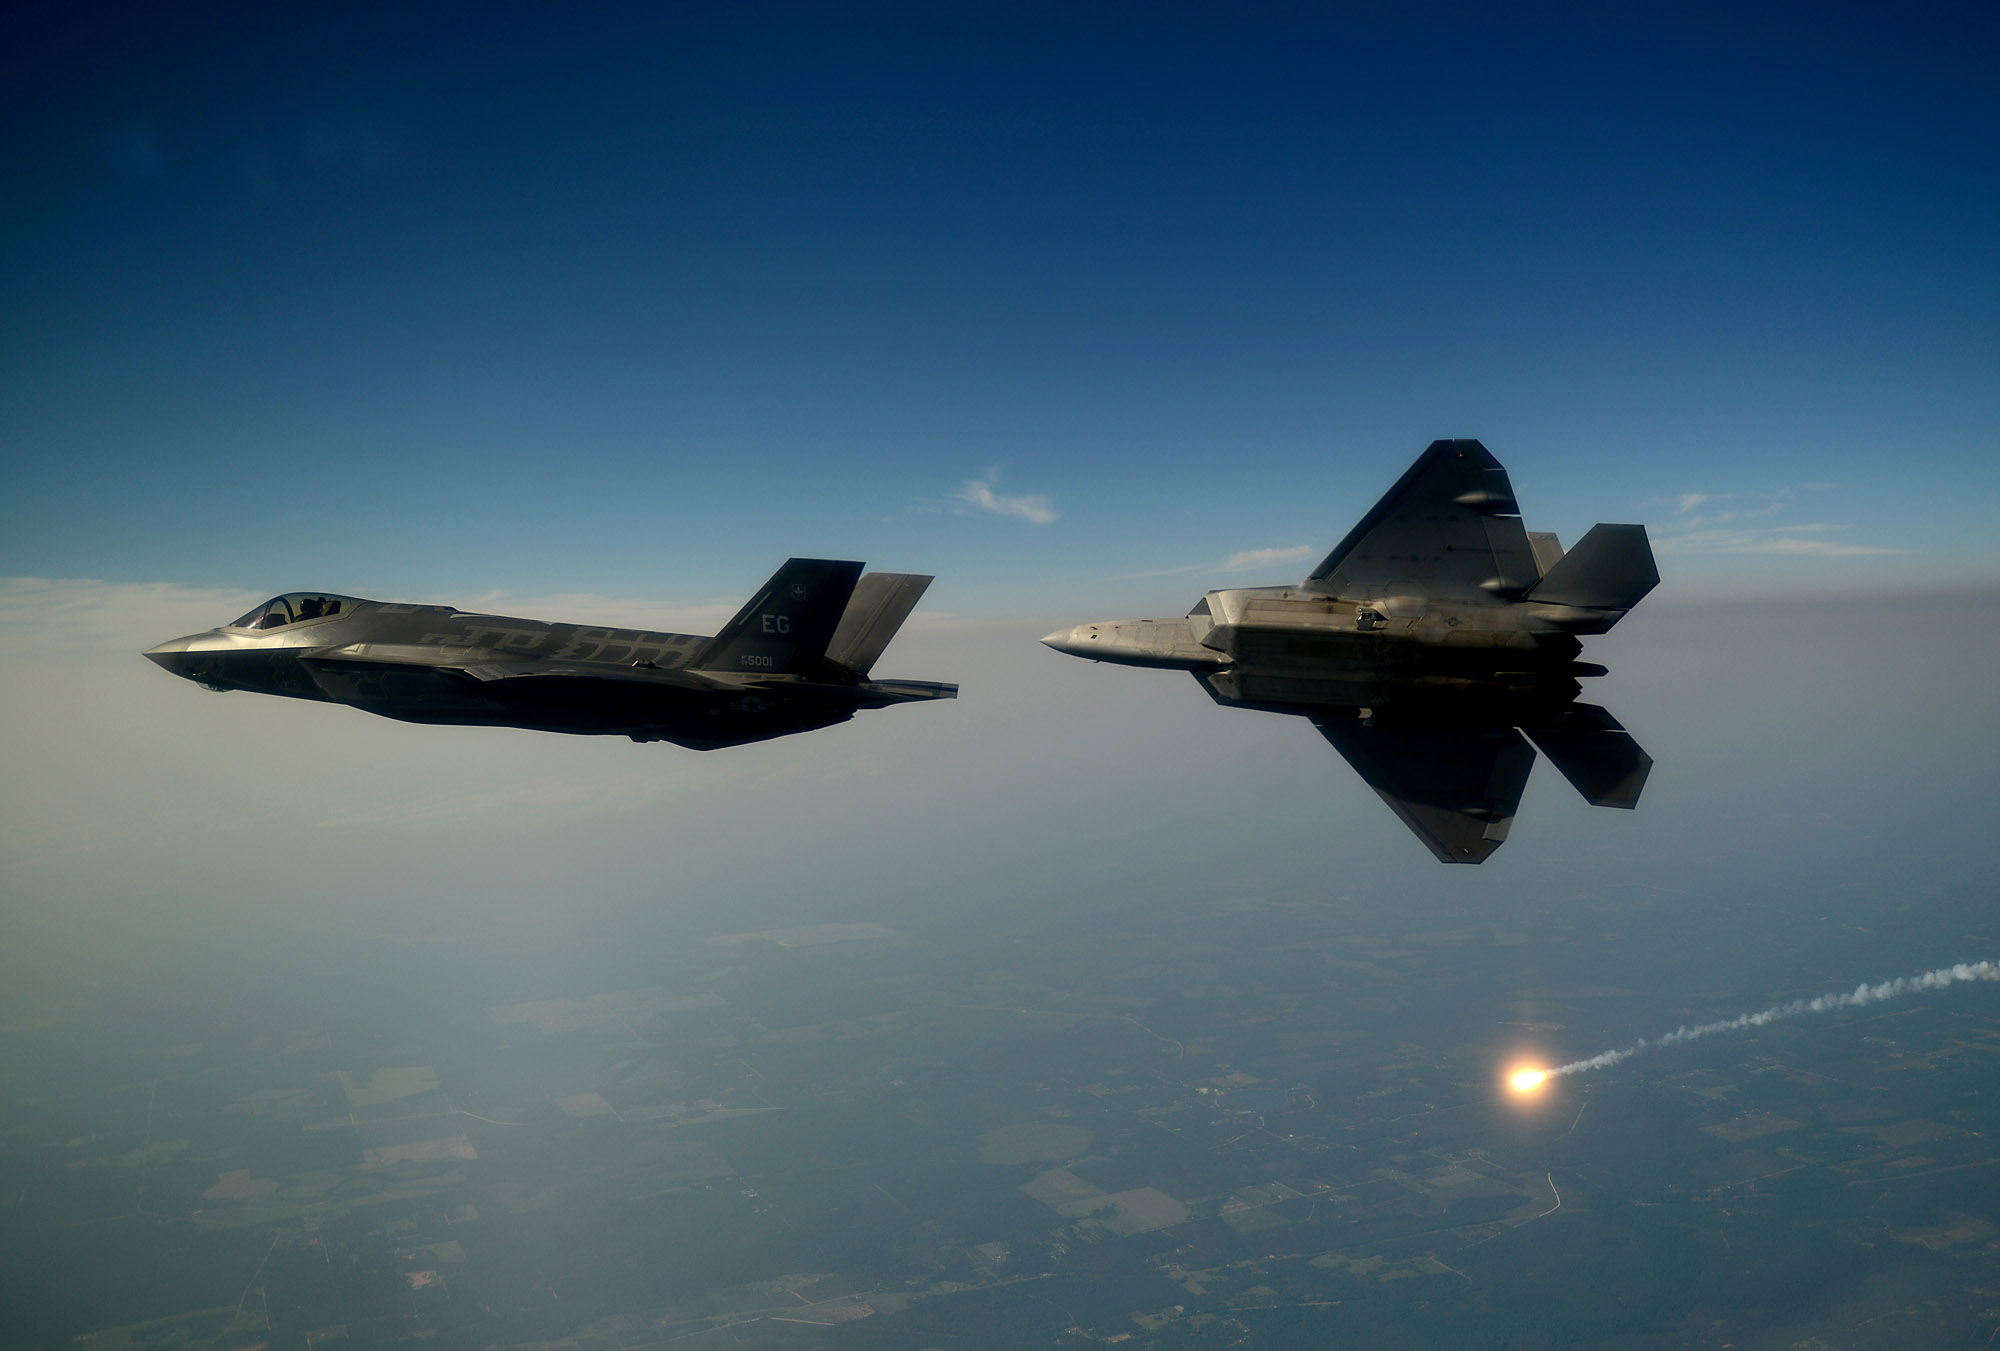 Fifth generation aircraft - Lockheed Martin F-22 Raptor